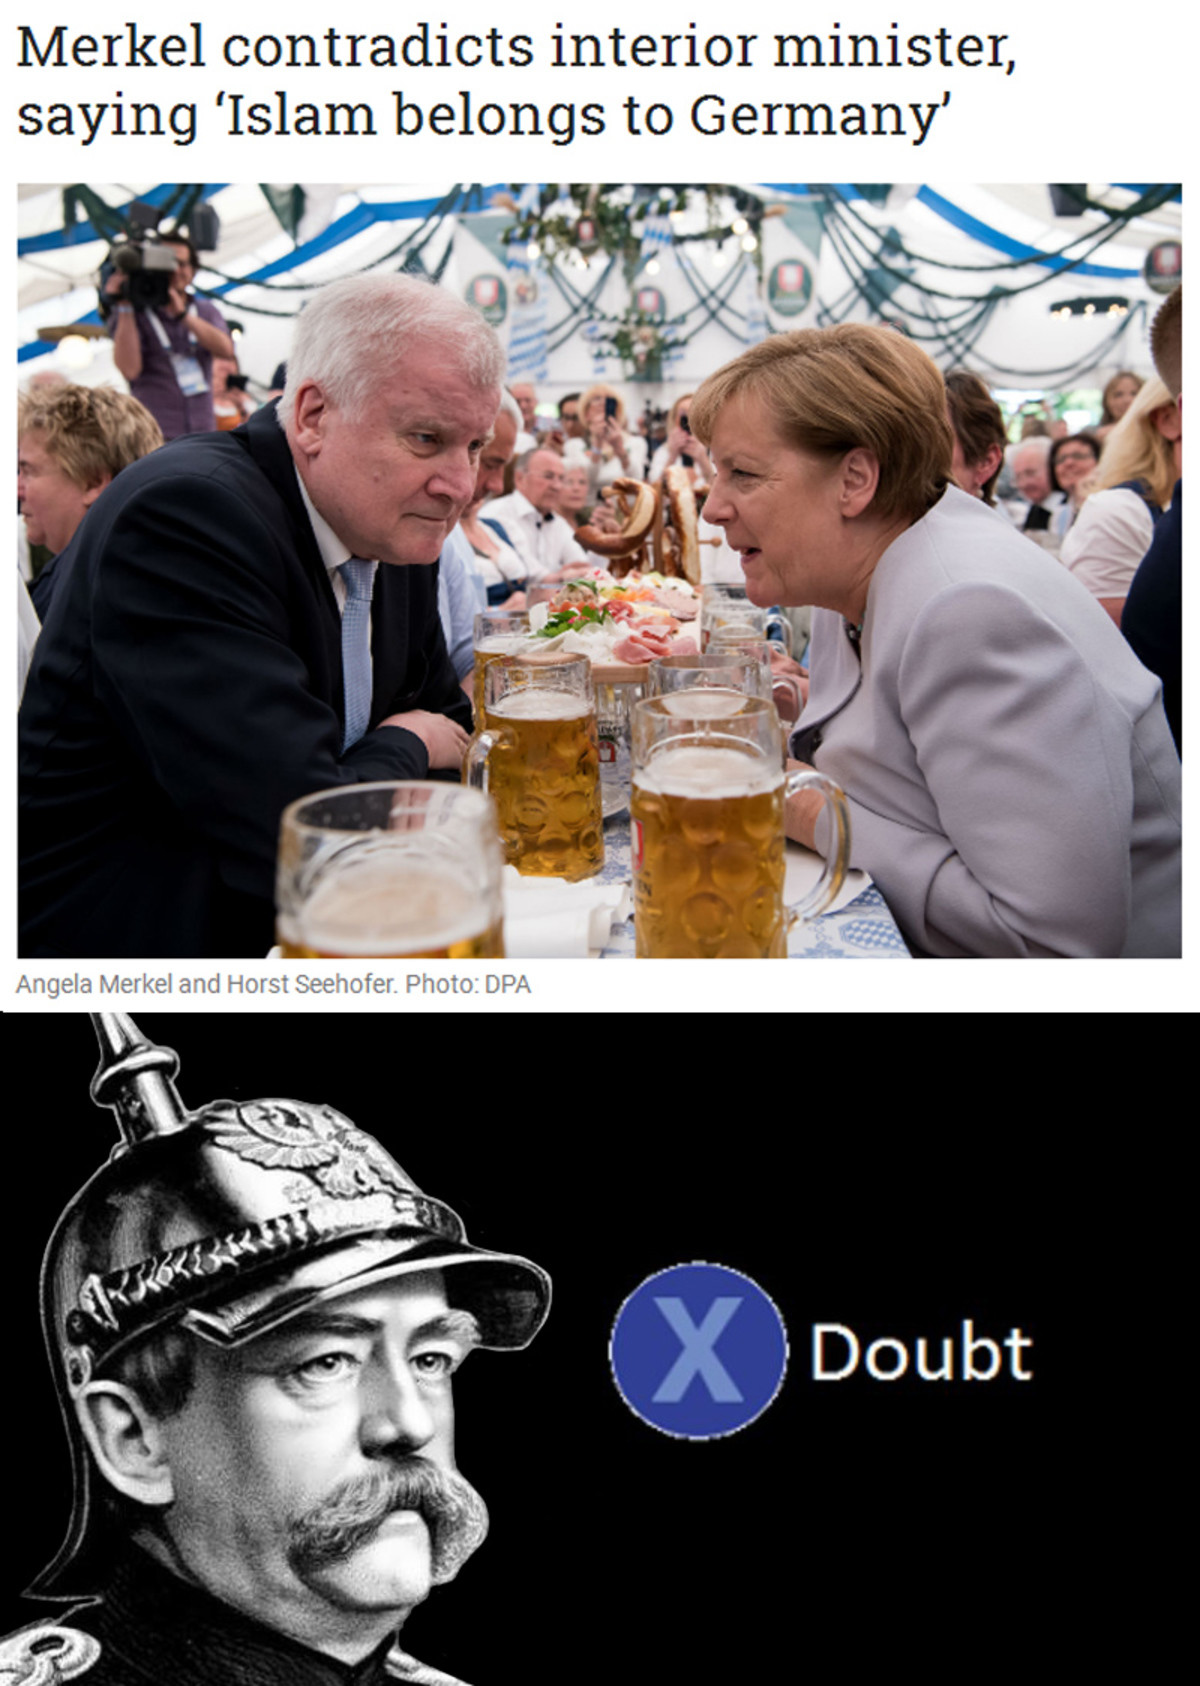 Double doubt. . Merkel contradicts interior minister, saying 'Islam belongs to Germany'. Couldn't help noticing how White the crowd is at Merkel's private get together.